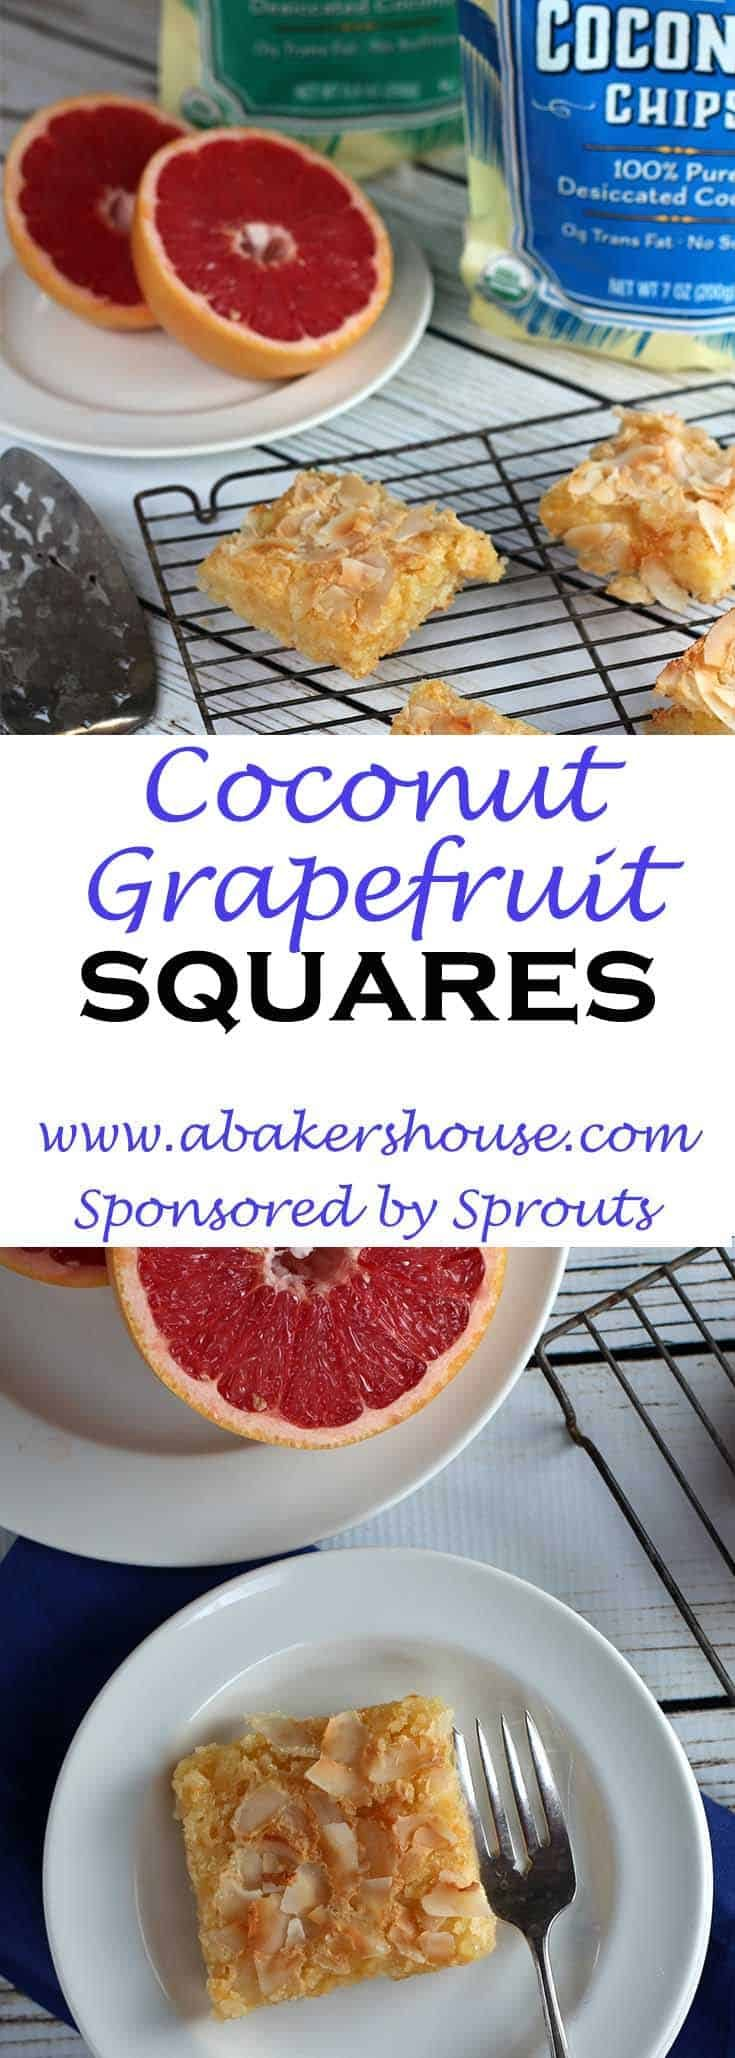 Take yourself on a tropical escape with these dreamy coconut-grapefruit squares! This dessert is a twist on the classic lemon square. A traditional shortbread crust with the addition of shredded coconut is combined with a vibrant grapefruit filling and a crunchy coconut topping.   #abakershouse #sponsored #sprouts #grapefruit #coconut #easydessert